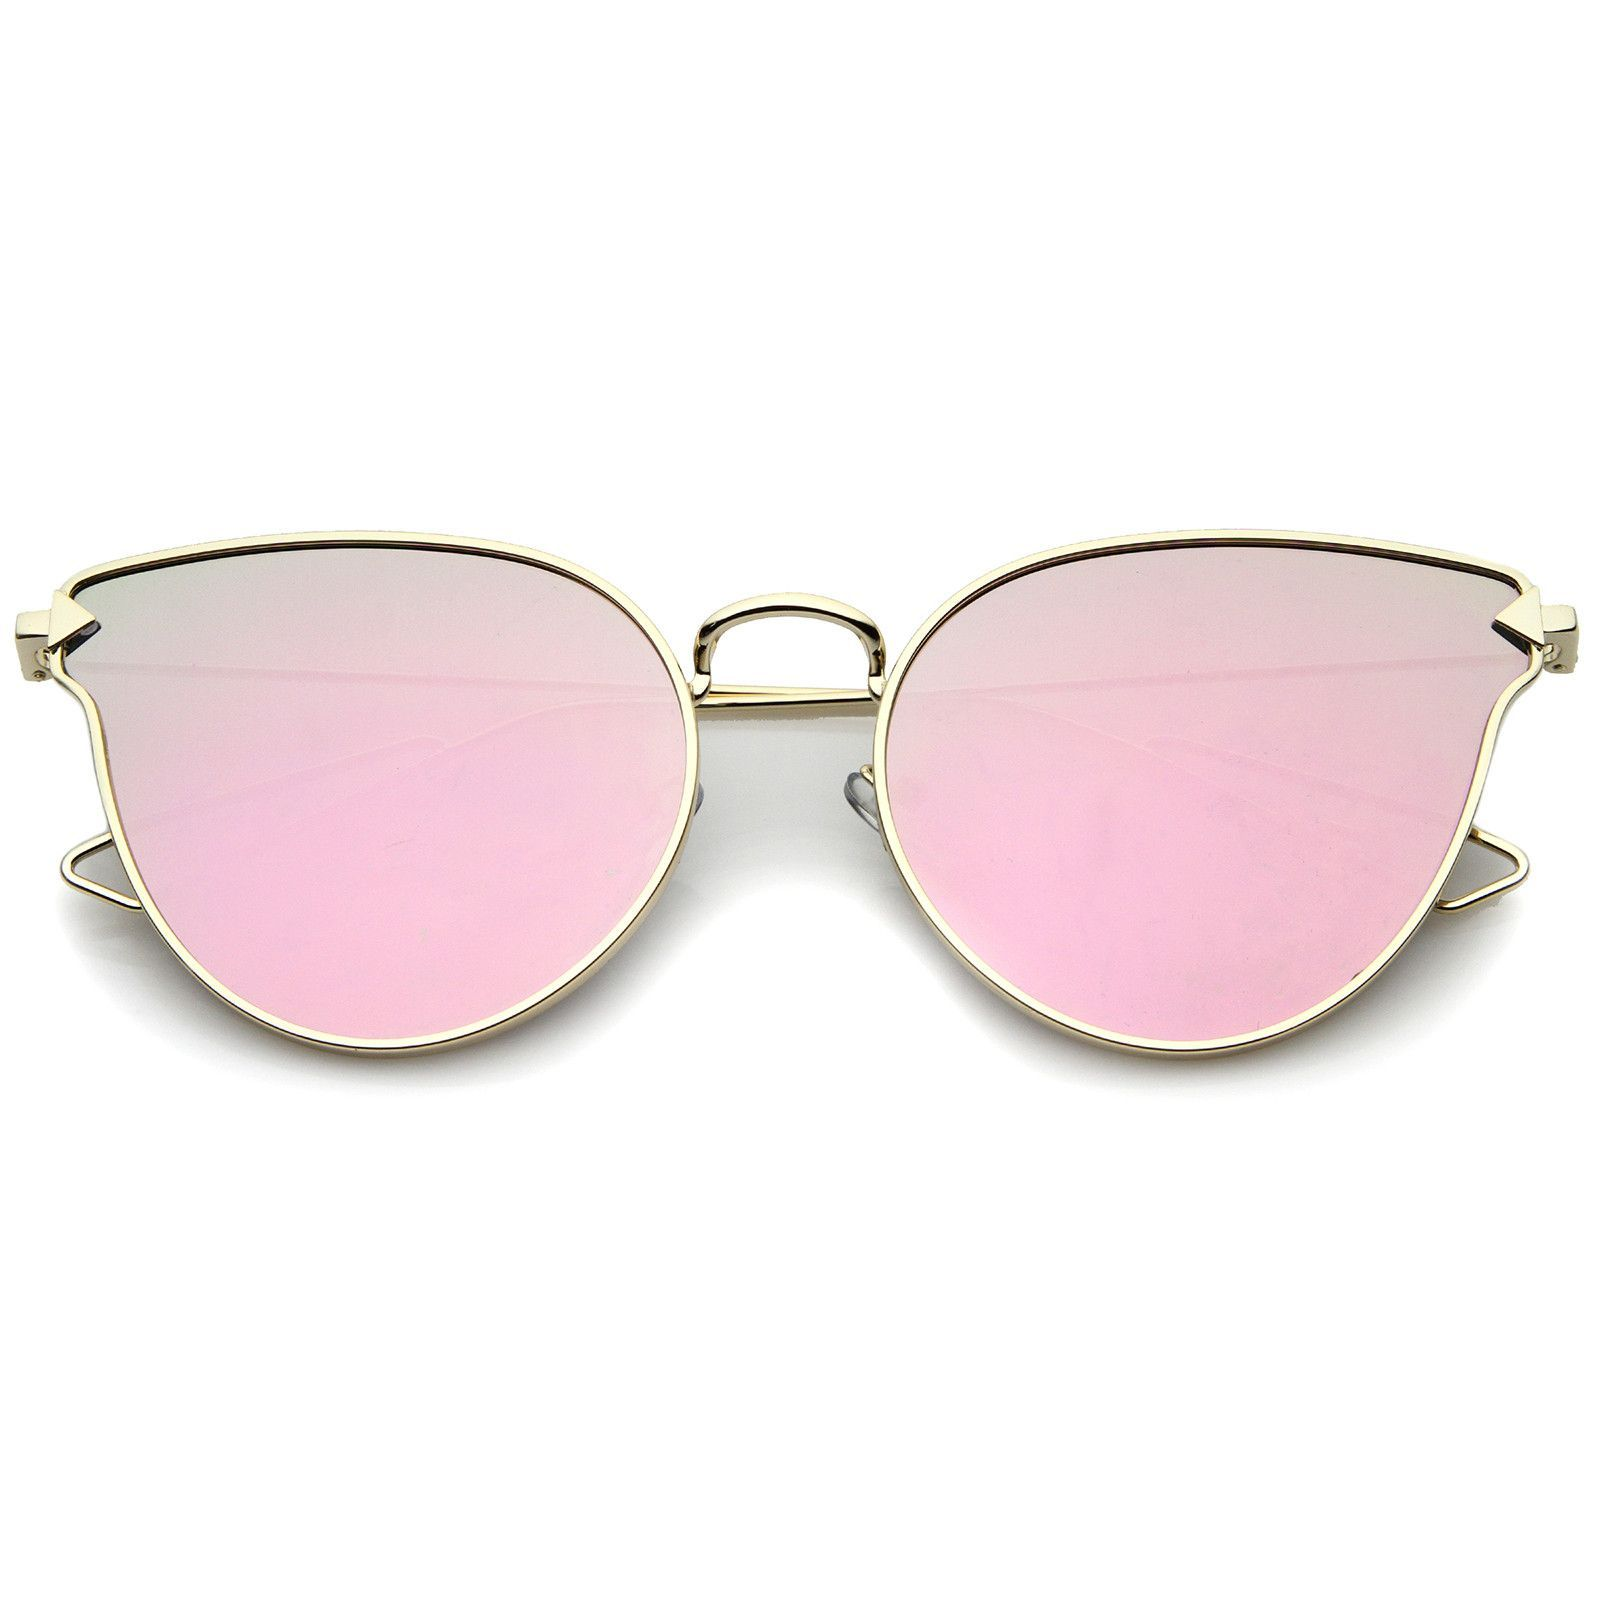 2b20eef9c9 Women s Metal Frame Arrow Temples Color Mirror Flat Lens Cat Eye Sunglasses  58mm